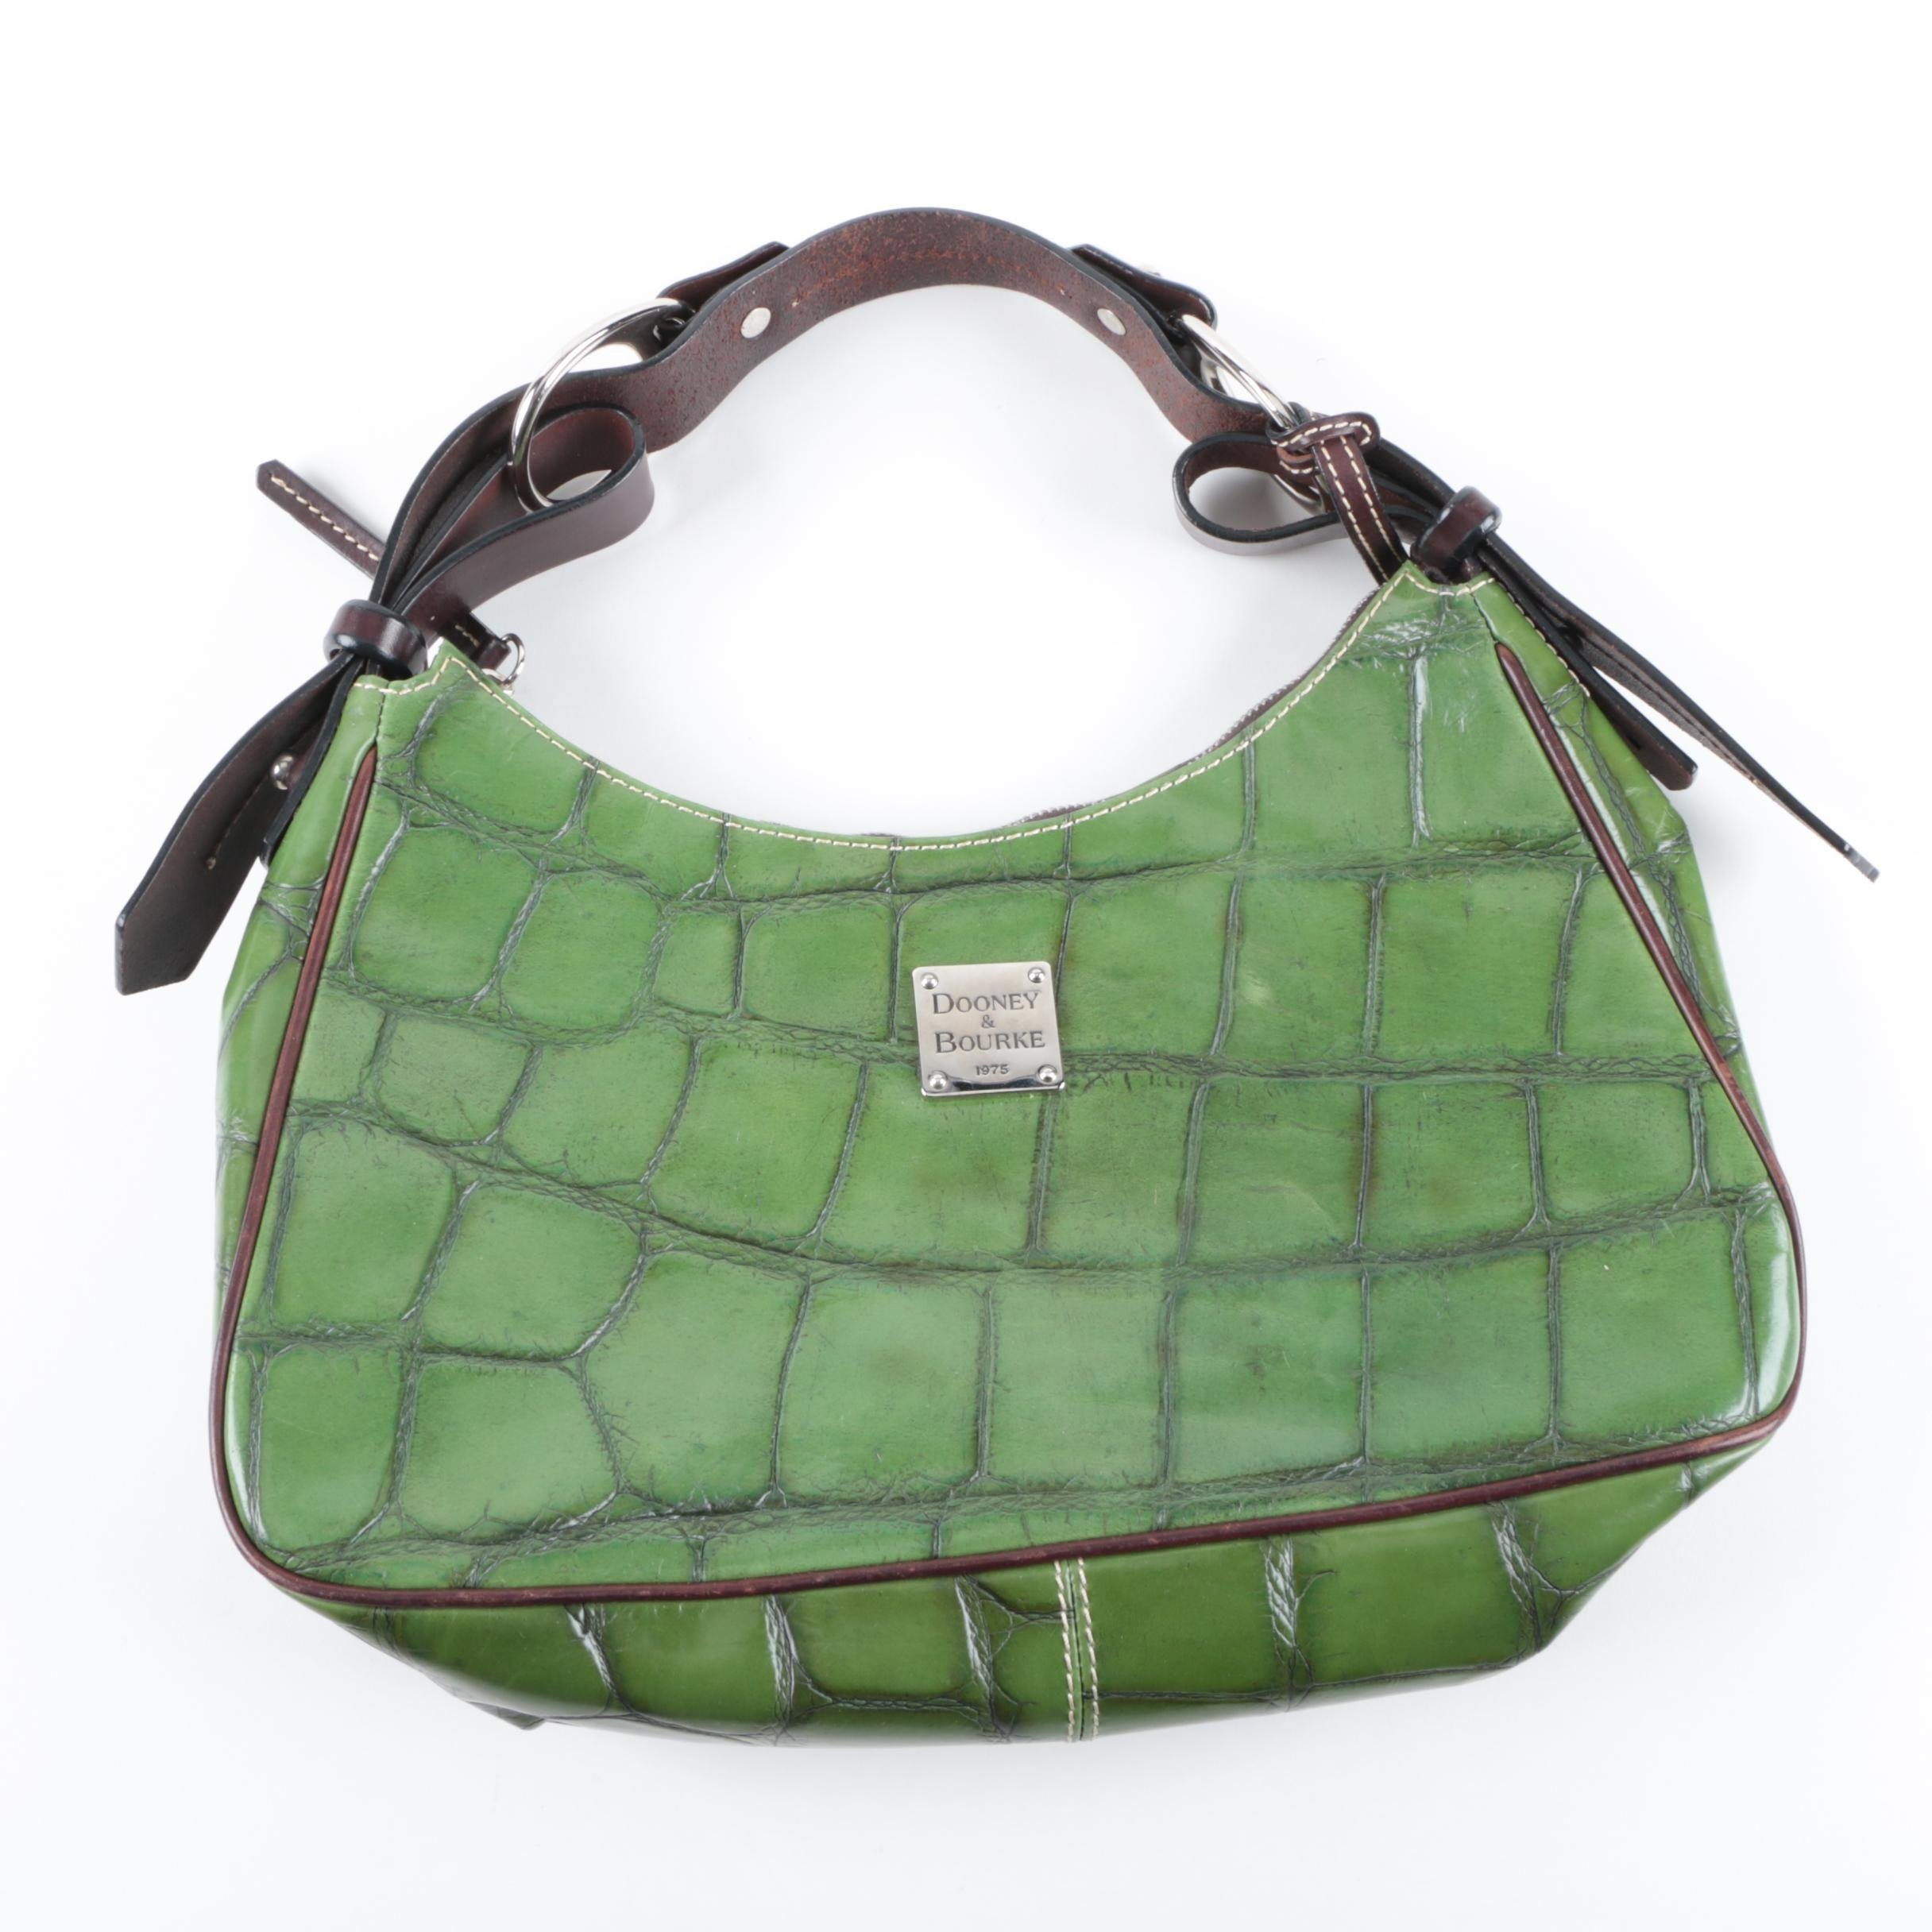 Dooney and Bourke Crocodile Embossed Green Leather Handbag